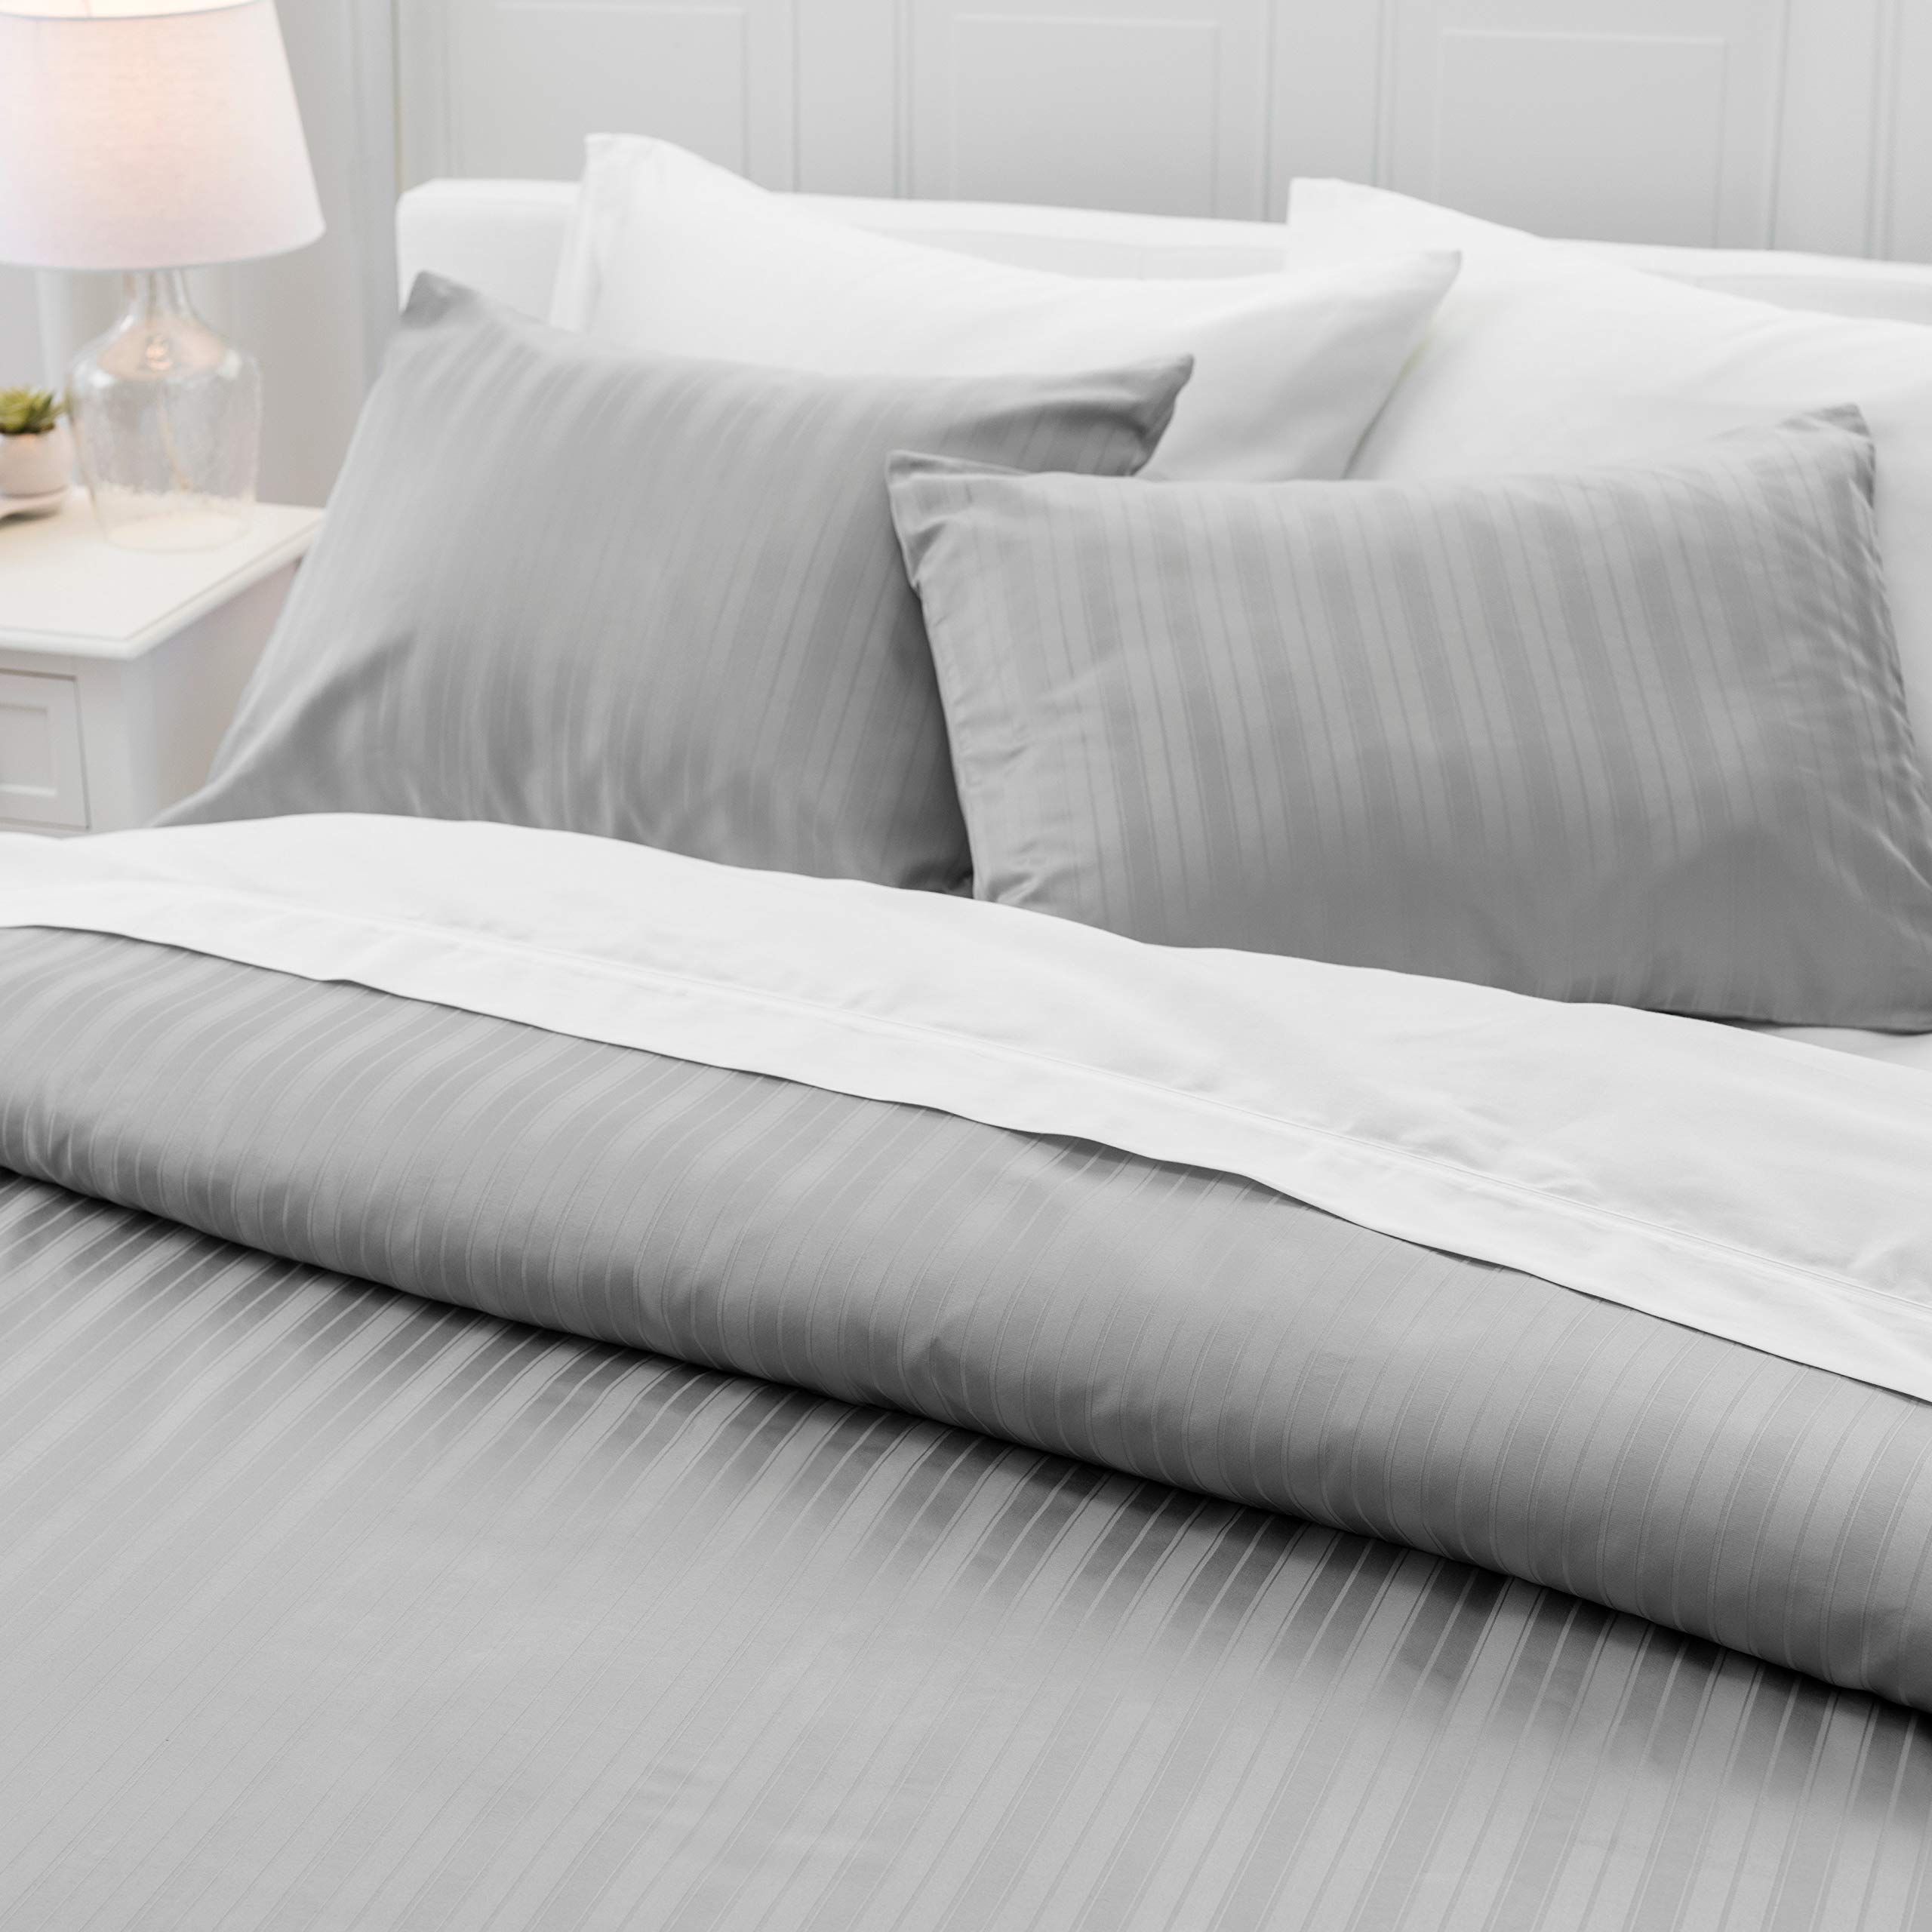 """Welhome Alexander 100% Cotton Sateen Stripe Duvet Set - Full/Queen Size - 88""""x92"""" - Luxurious - Smooth & Soft - Durable - Breathable - Machine Washable - Smoke"""